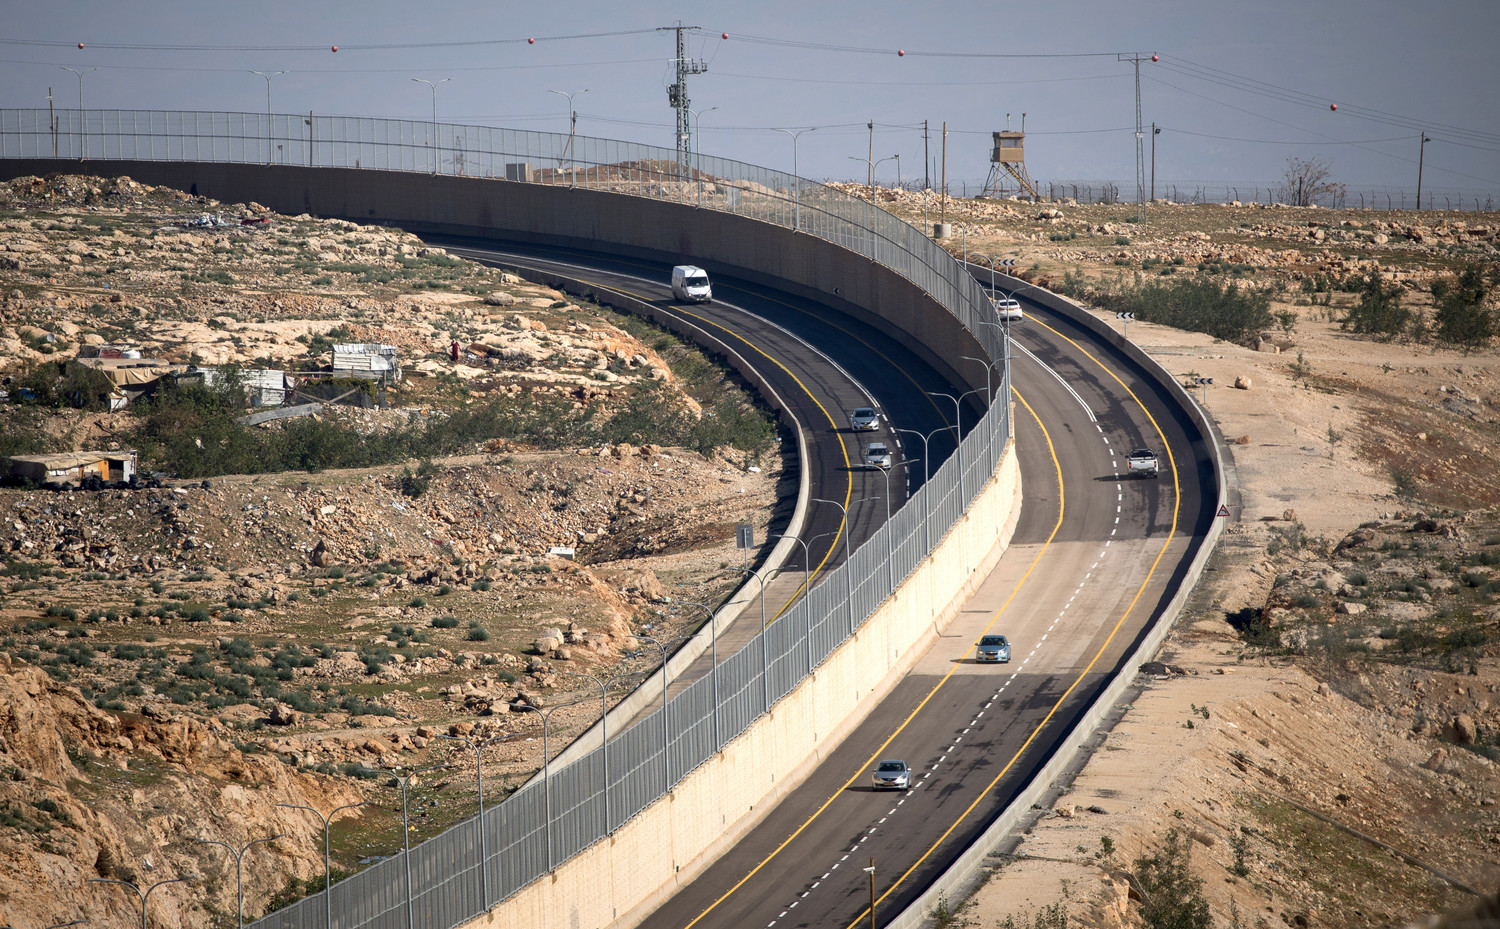 View of Route 4370, northeast of Jerusalem, which connects the Geva Binyamin area to Route 1, and separates vehicles of Israeli citizens and non-citizens, on Jan. 10.